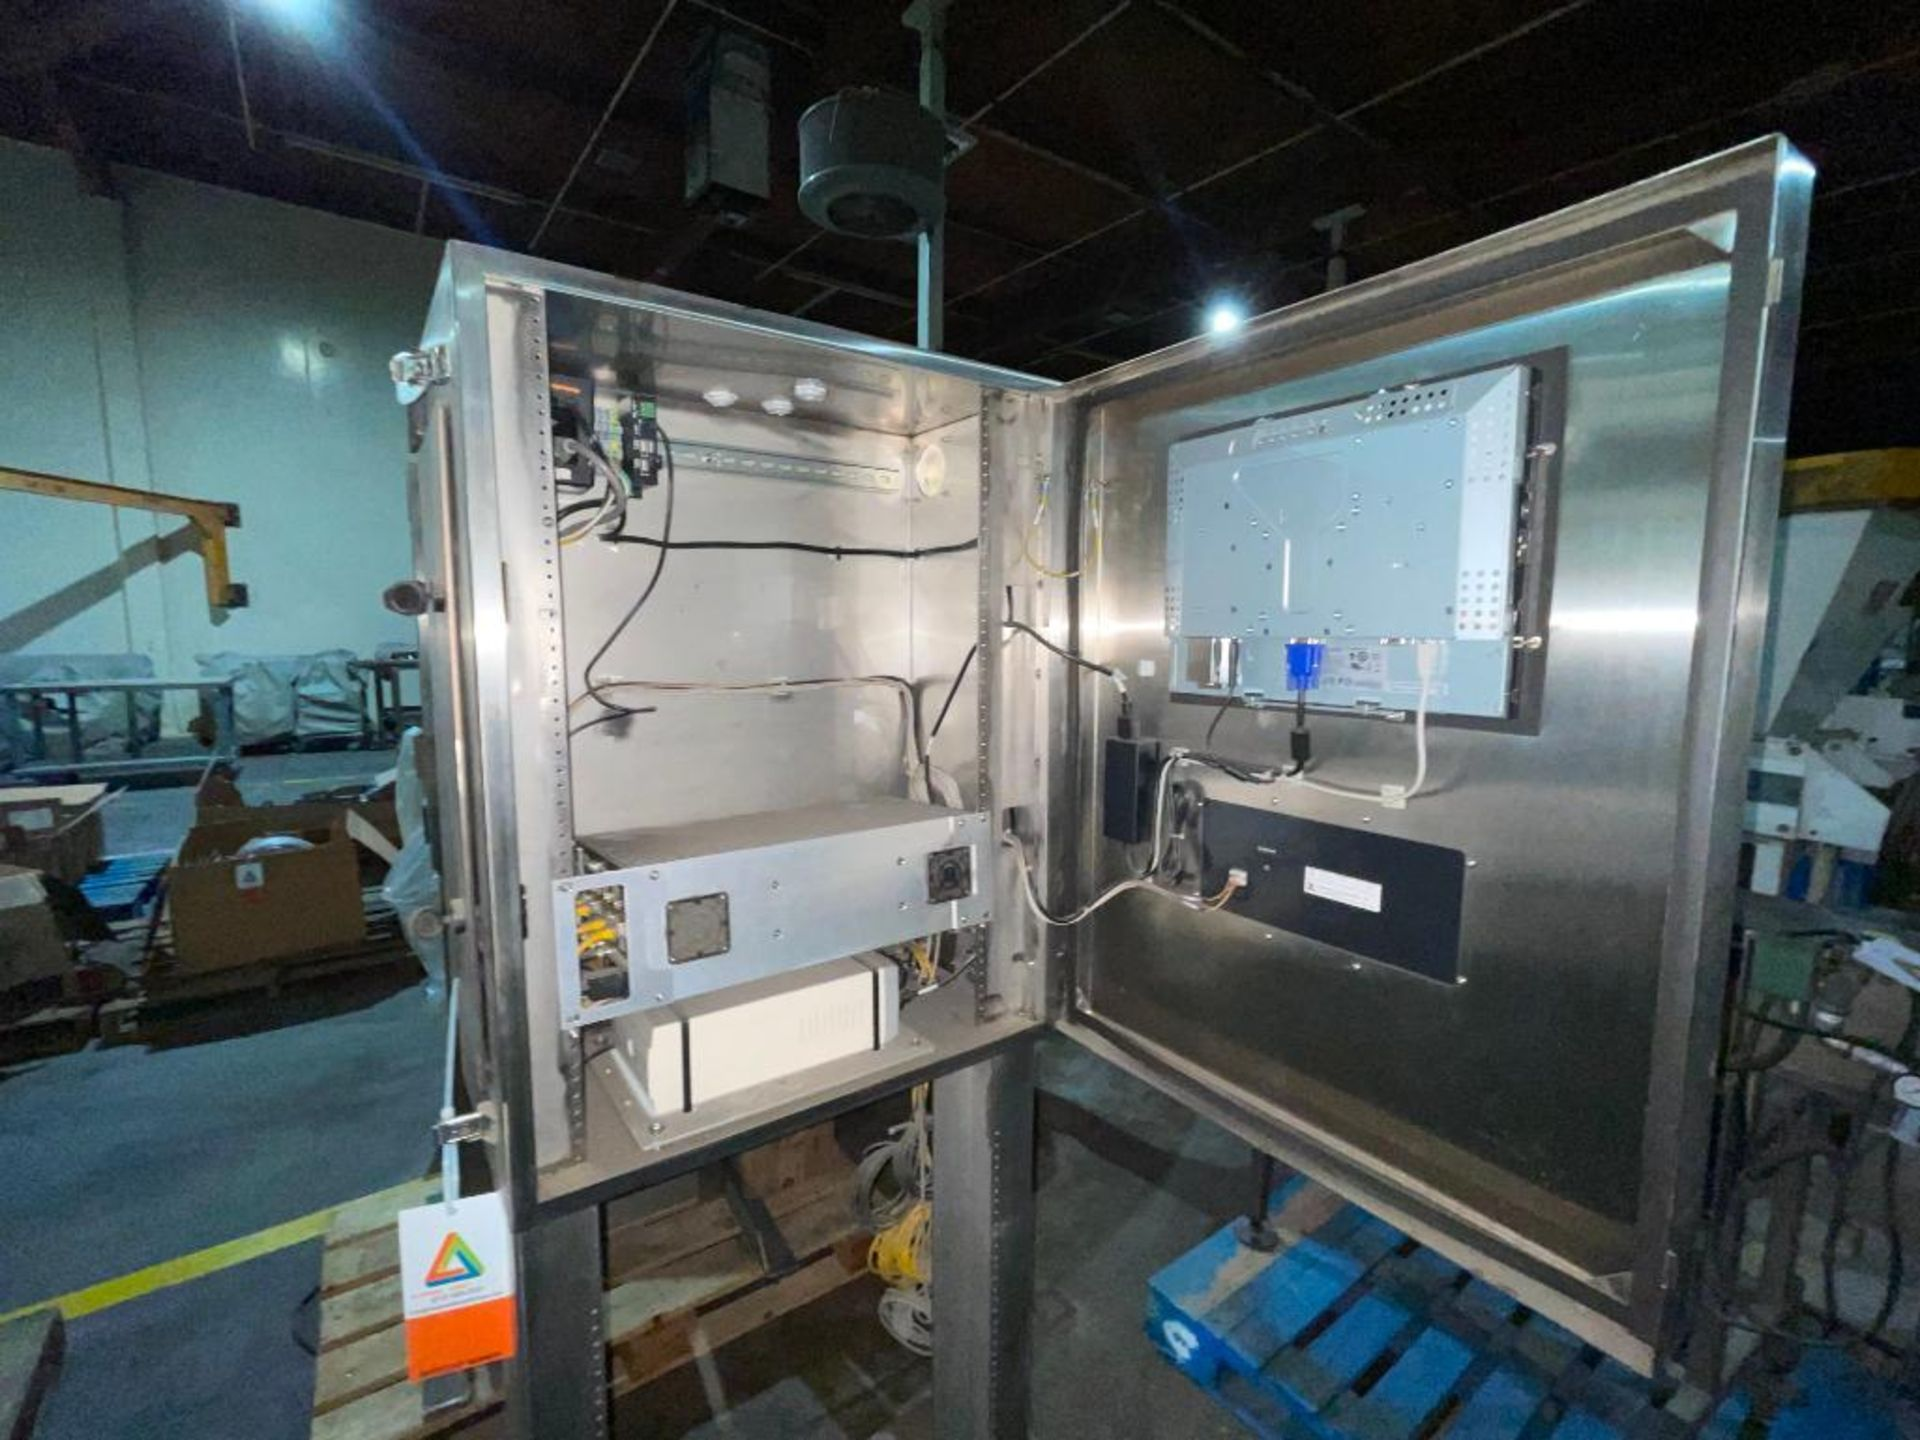 stainless steel pedestal control panel - Image 8 of 20